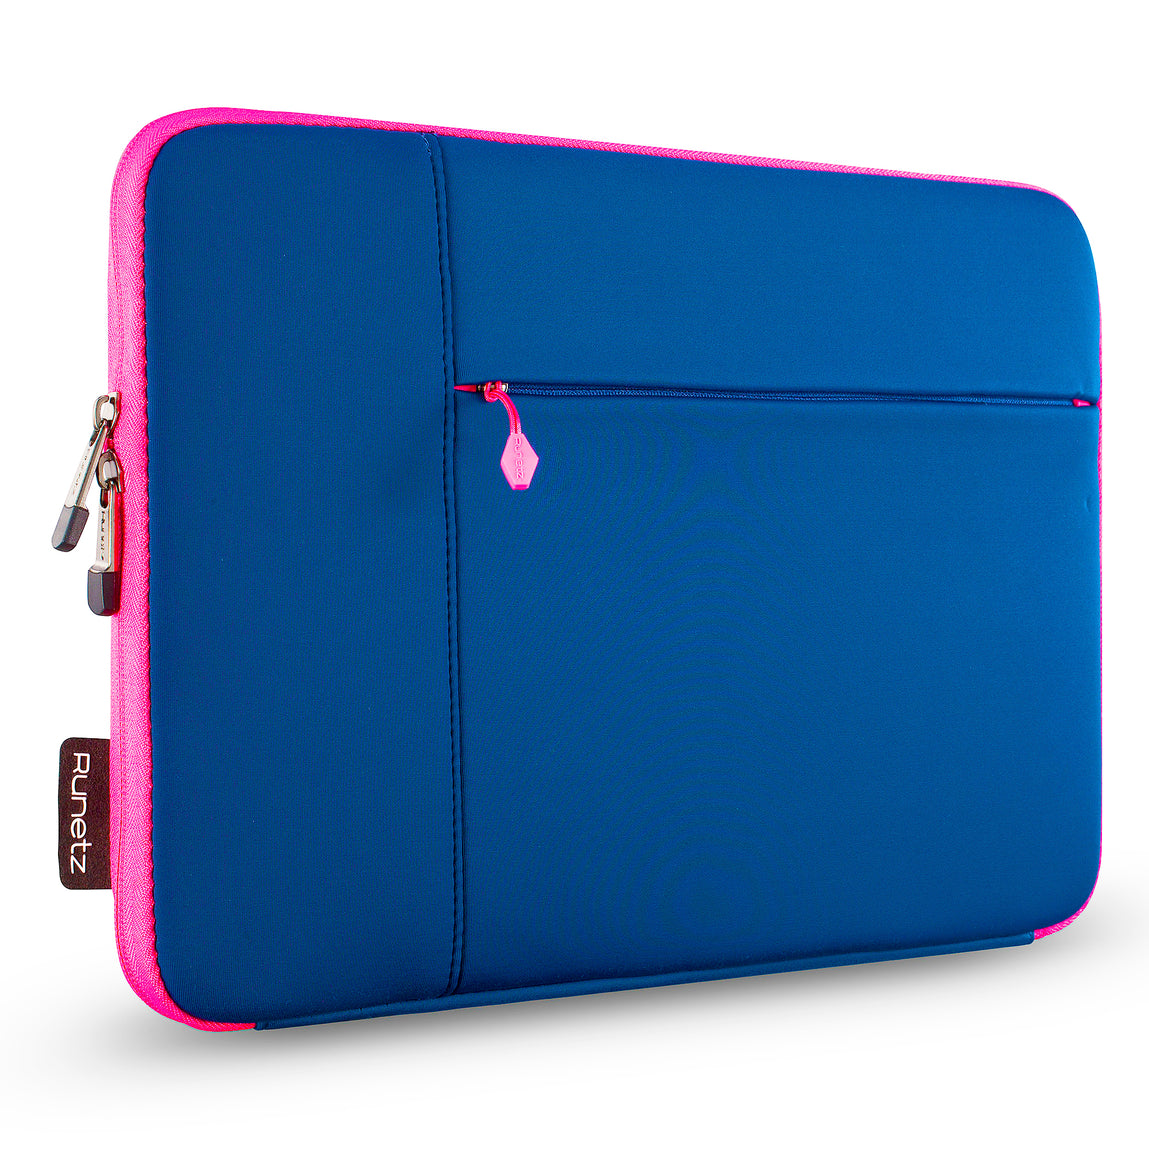 Tas Laptop Soft Sleeve Case Neoprene Double Pocket Macbook Softcase New Pro Air Retina 116 154 Inch Runetz Cover For And 1149x1149